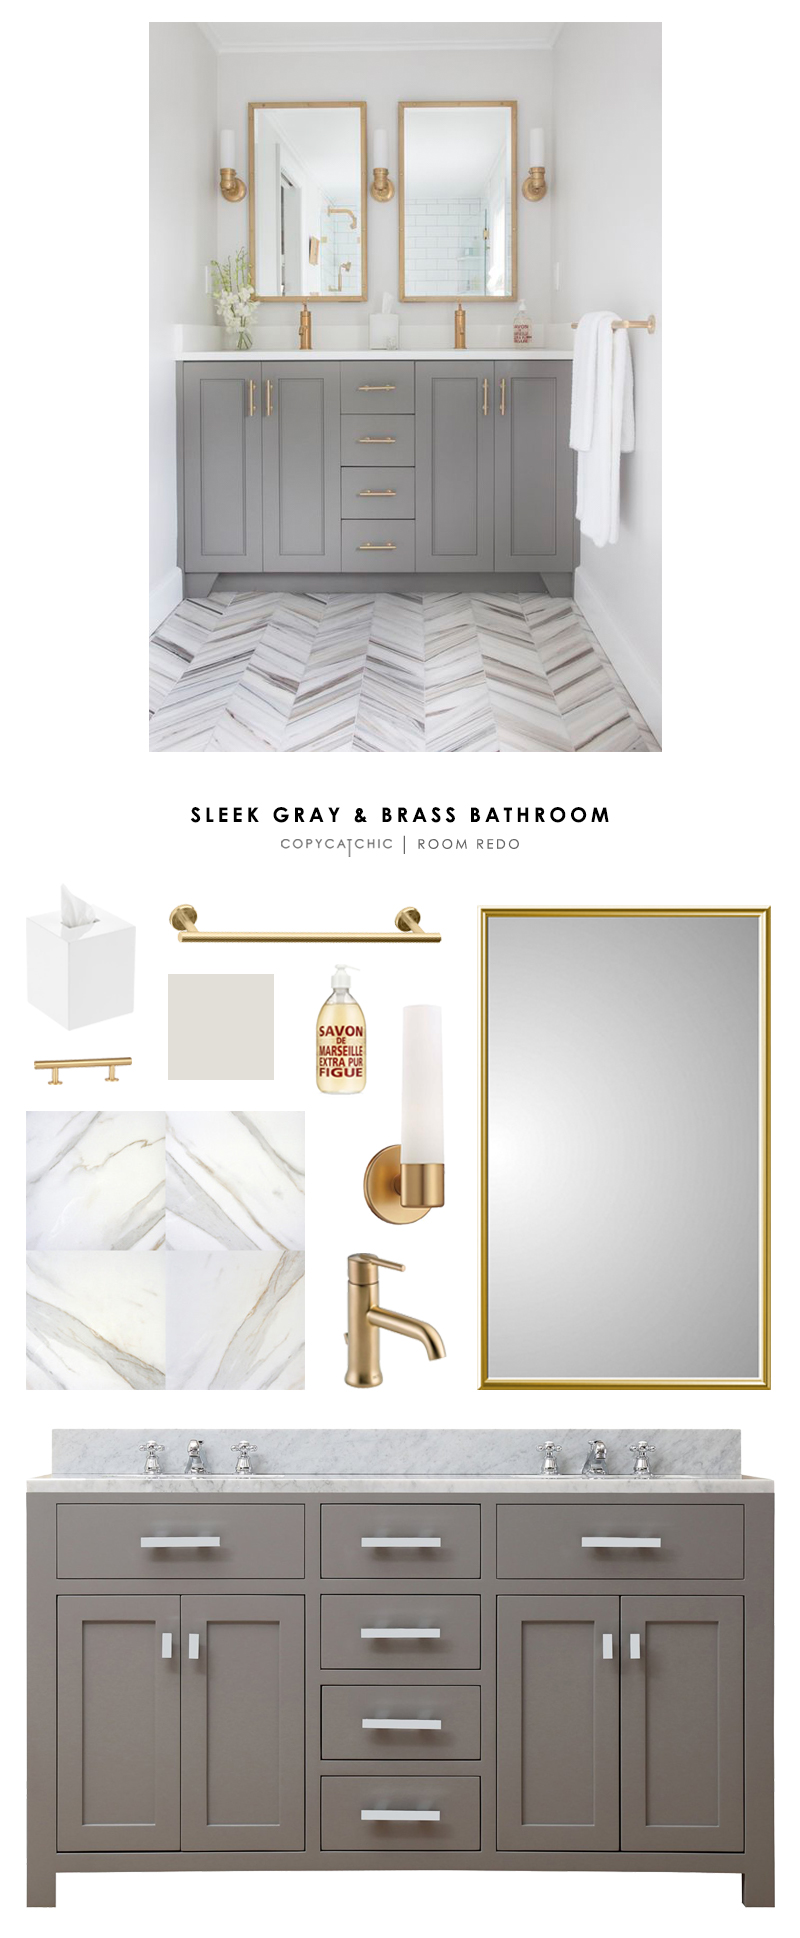 Copy Cat Chic Room Redo Sleek Gray And Brass Bathroom